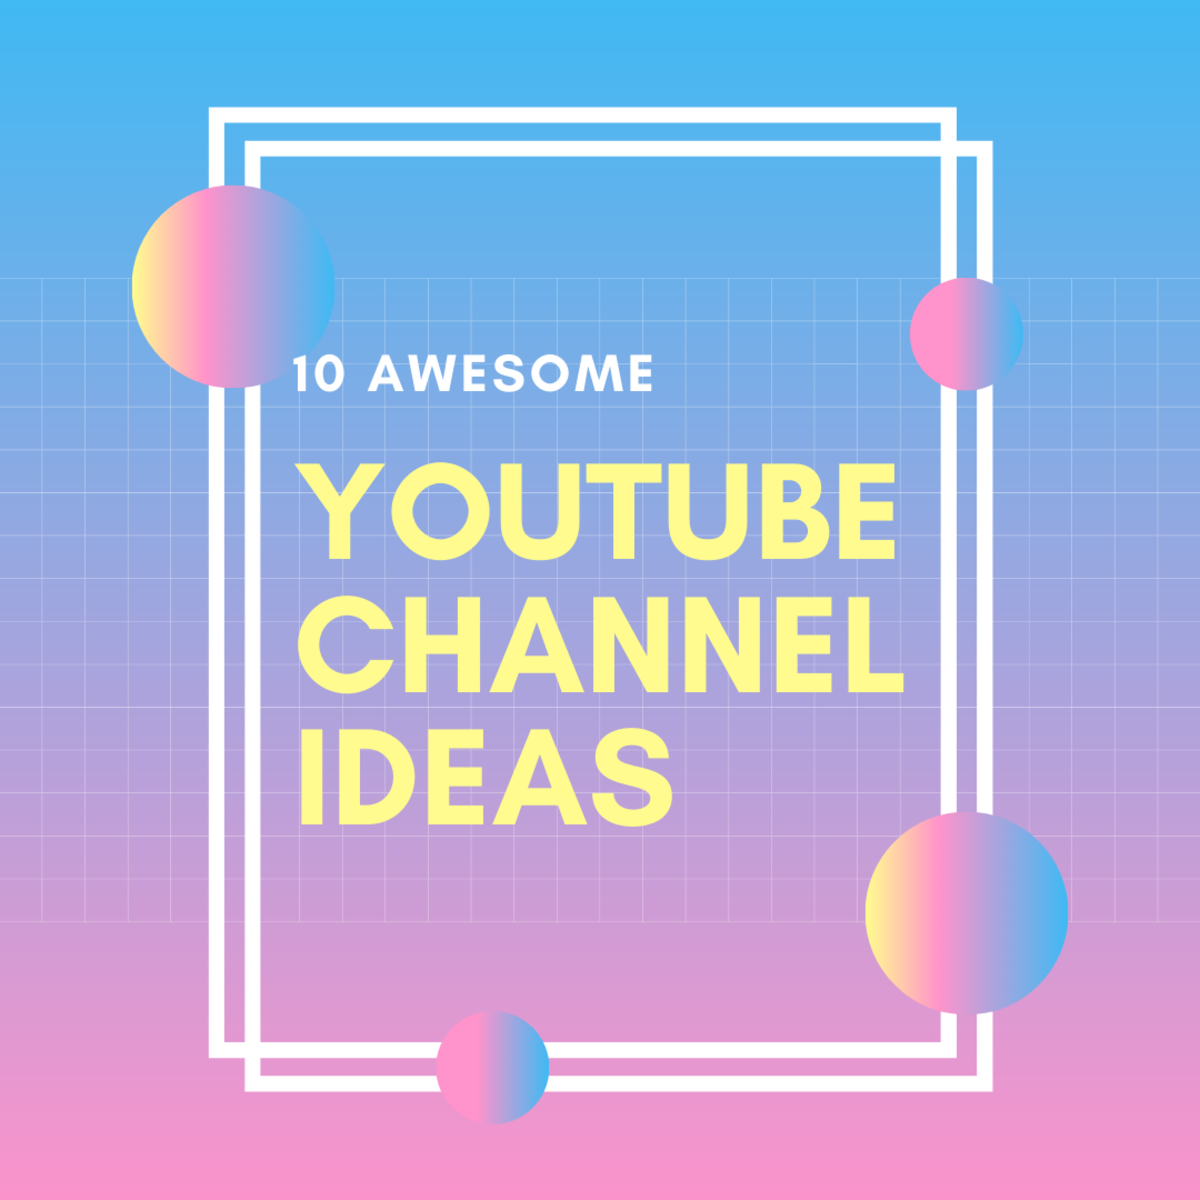 10 Awesome YouTube Channel Ideas for Making Money